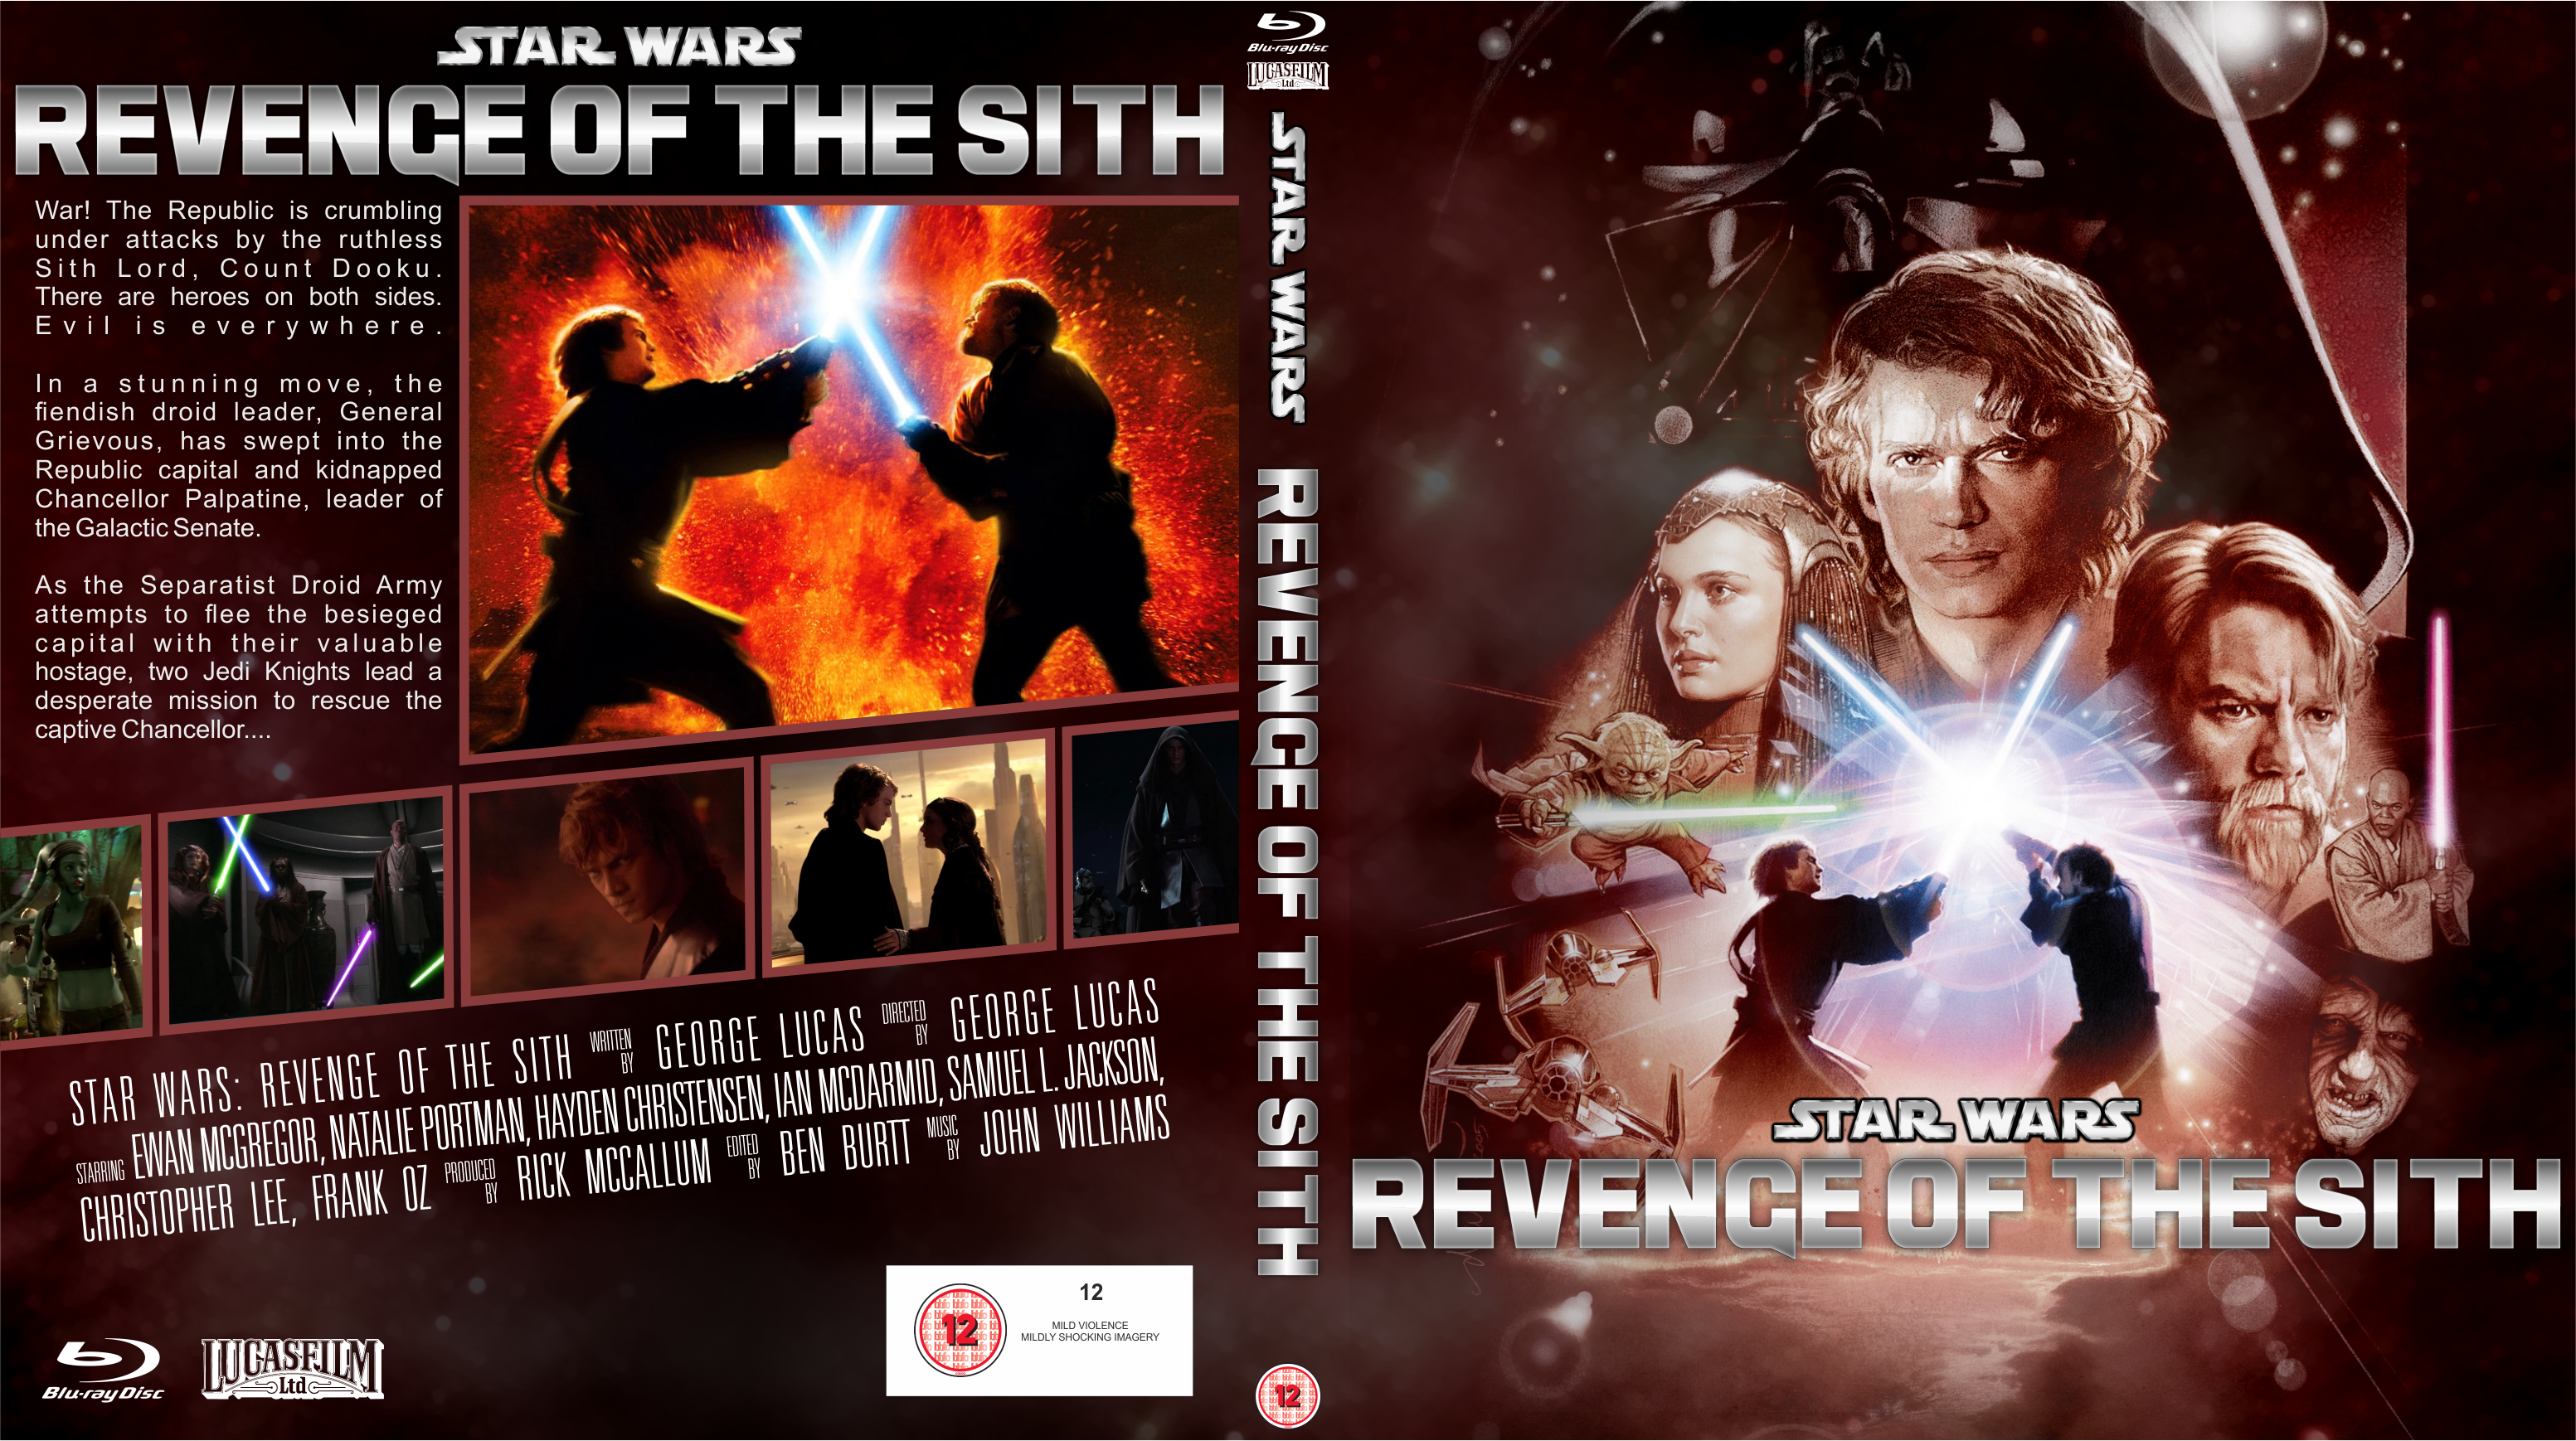 Star Wars Revenge Of The Sith Blu Ray Bd Cover By Wario64i On Deviantart